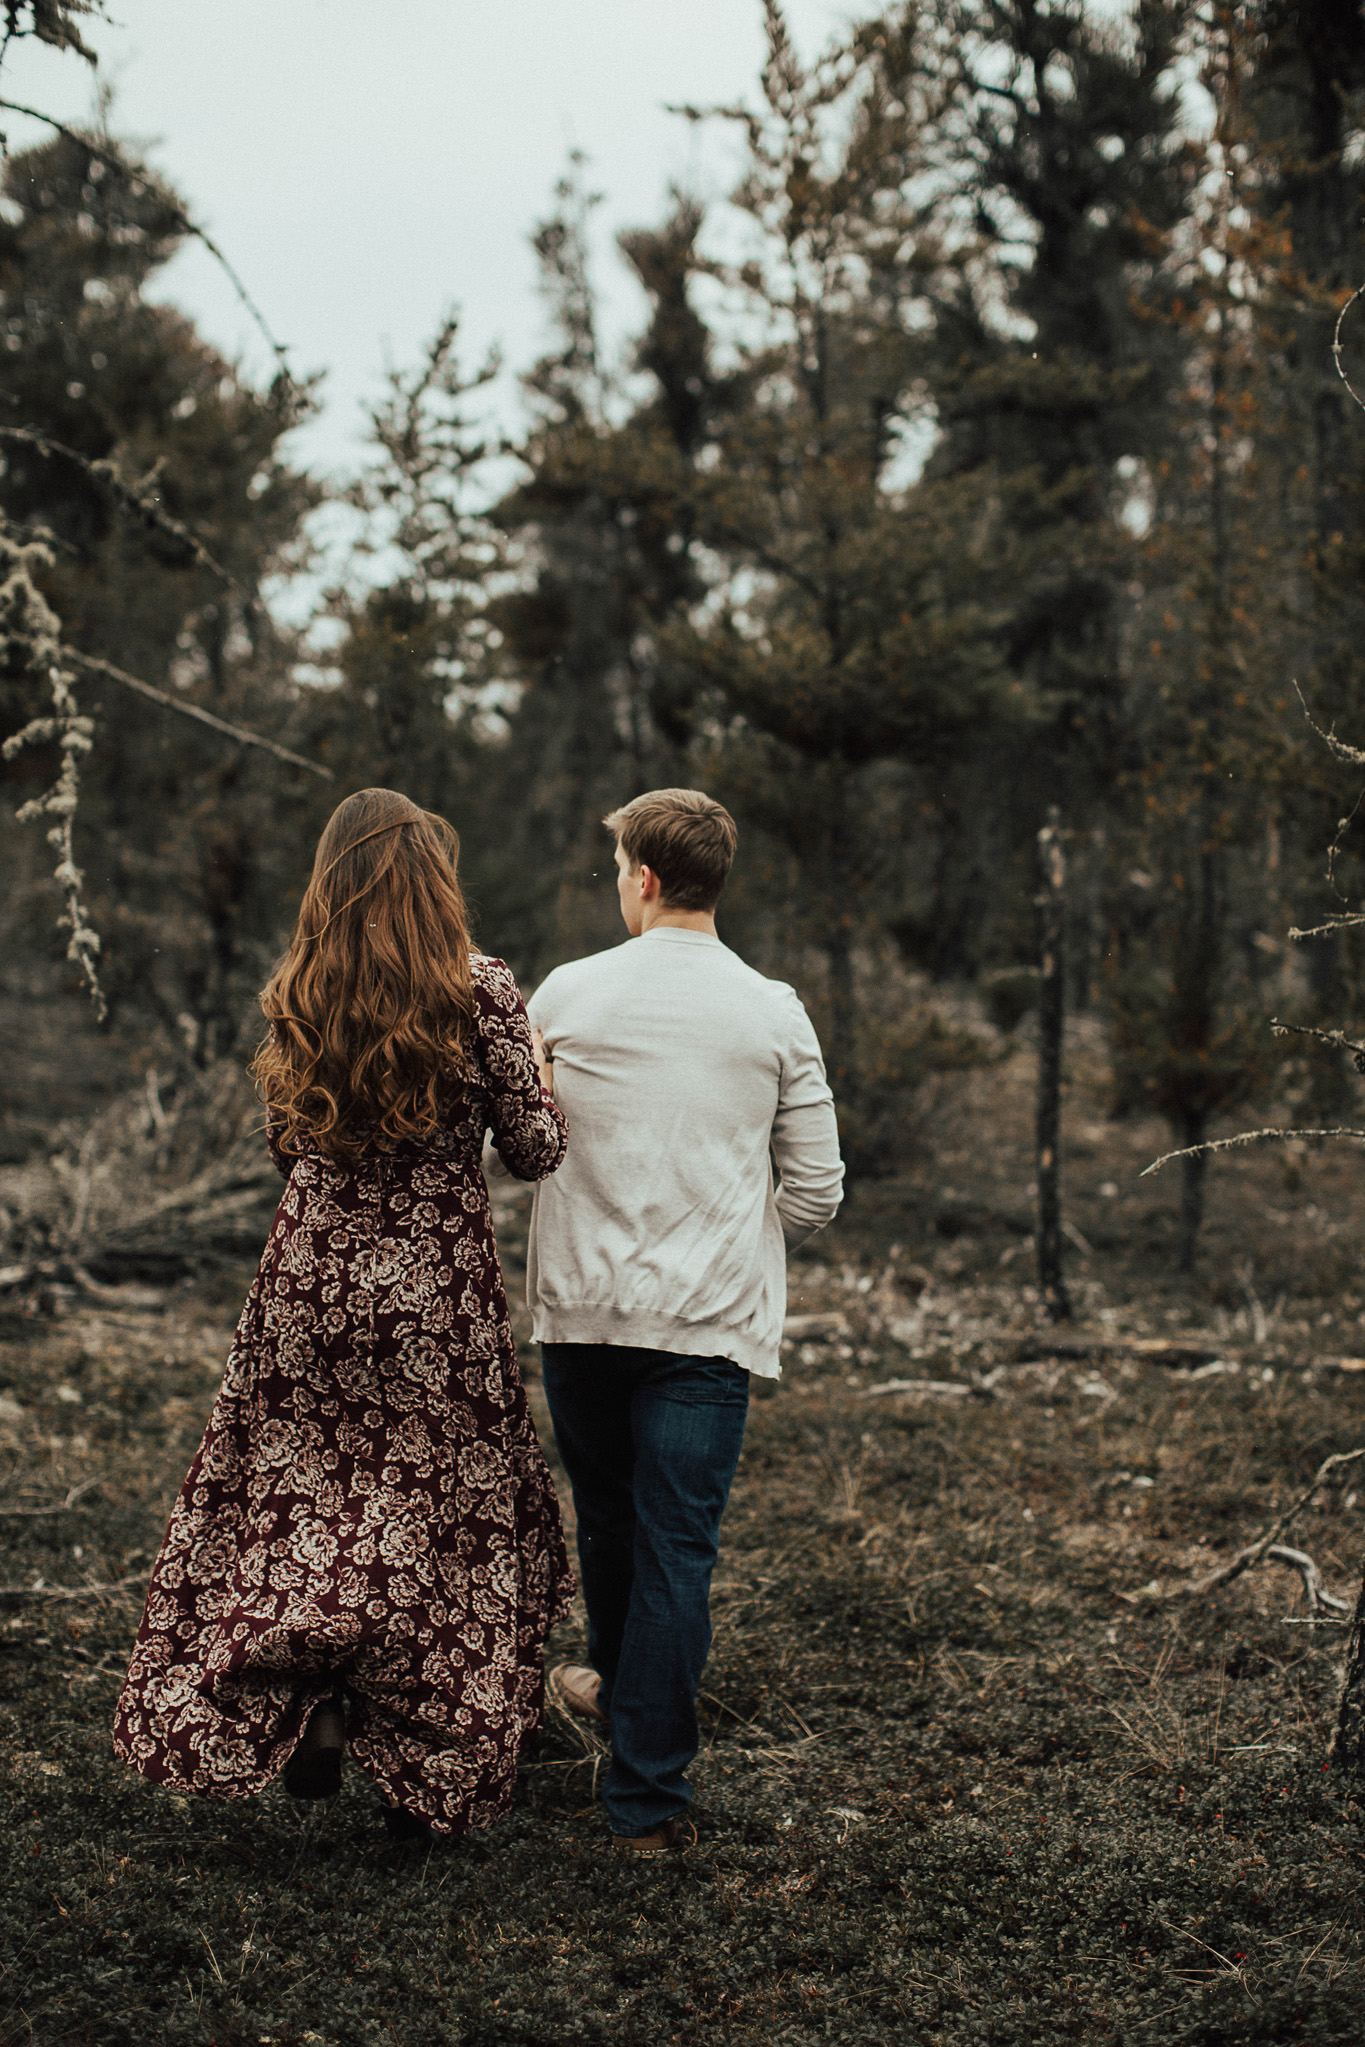 Edmonton Engagement Photographer - Michelle Larmand Photography - Mossy woods engagement session045